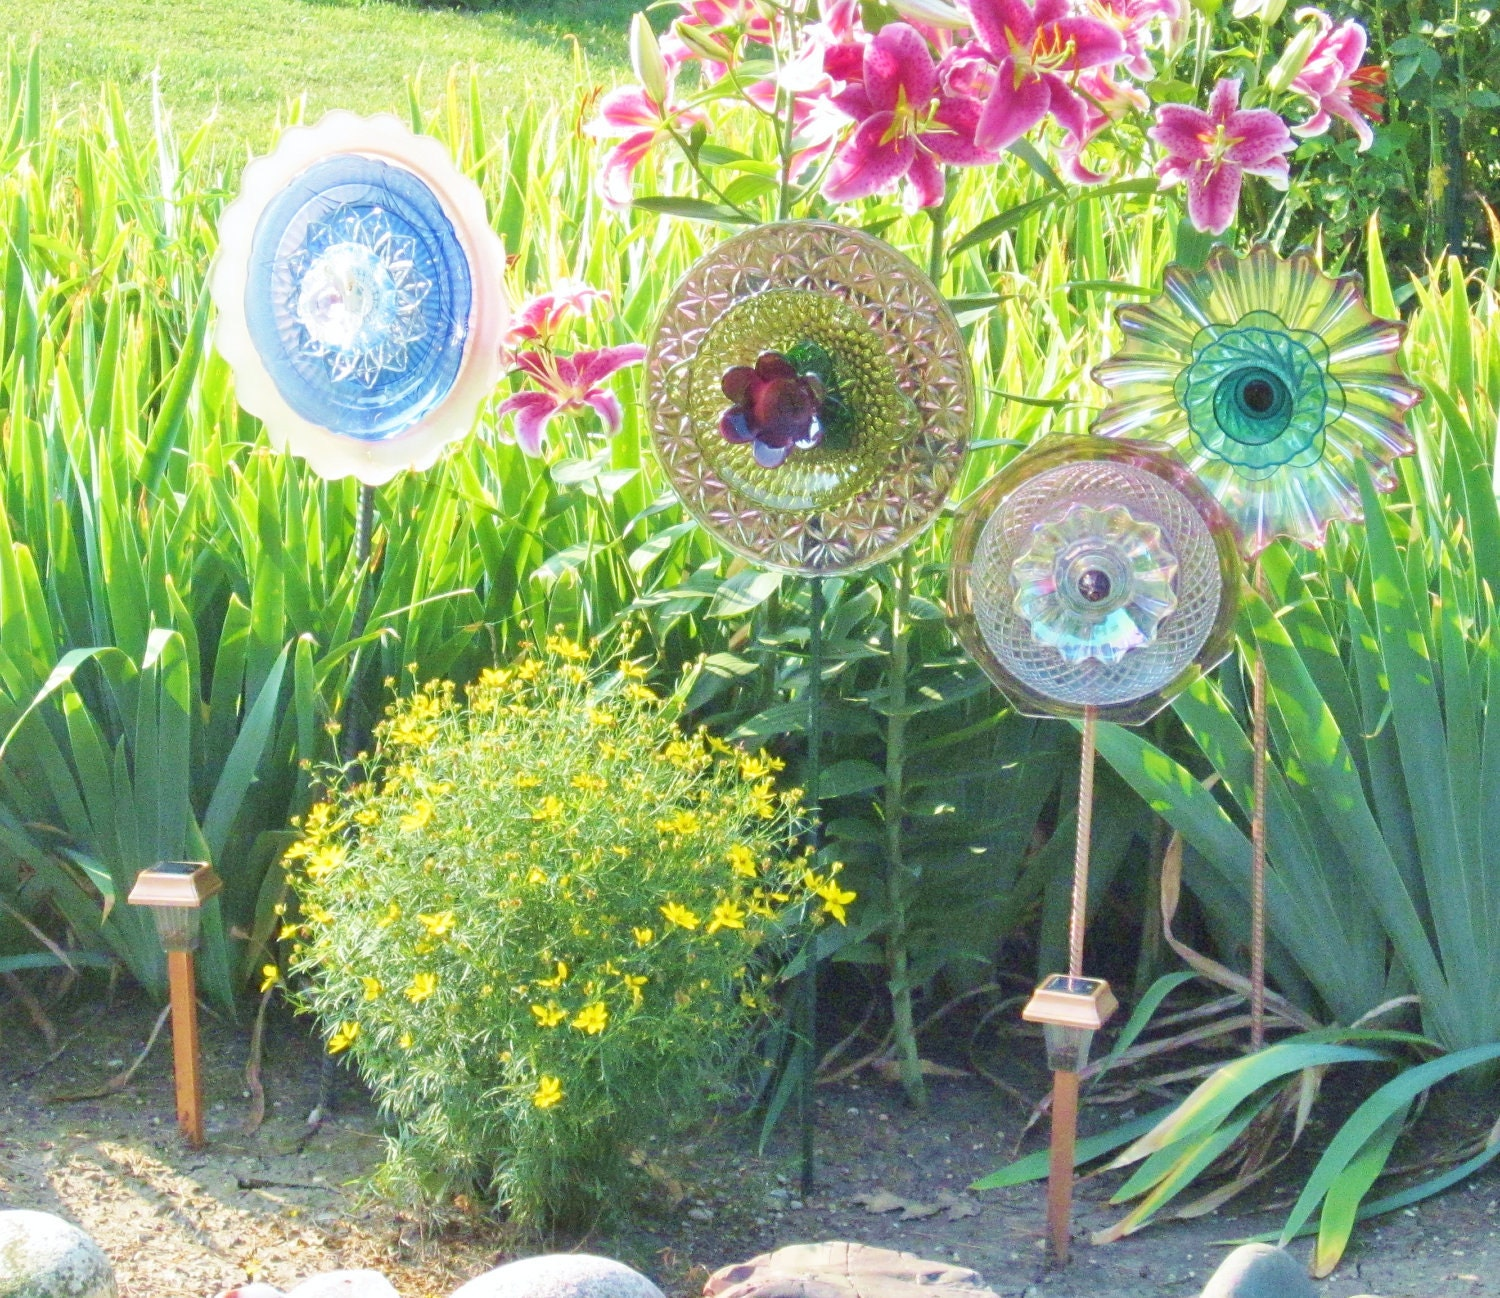 Lawn and garden decorative accessories garden decoration for Outdoor decorative items